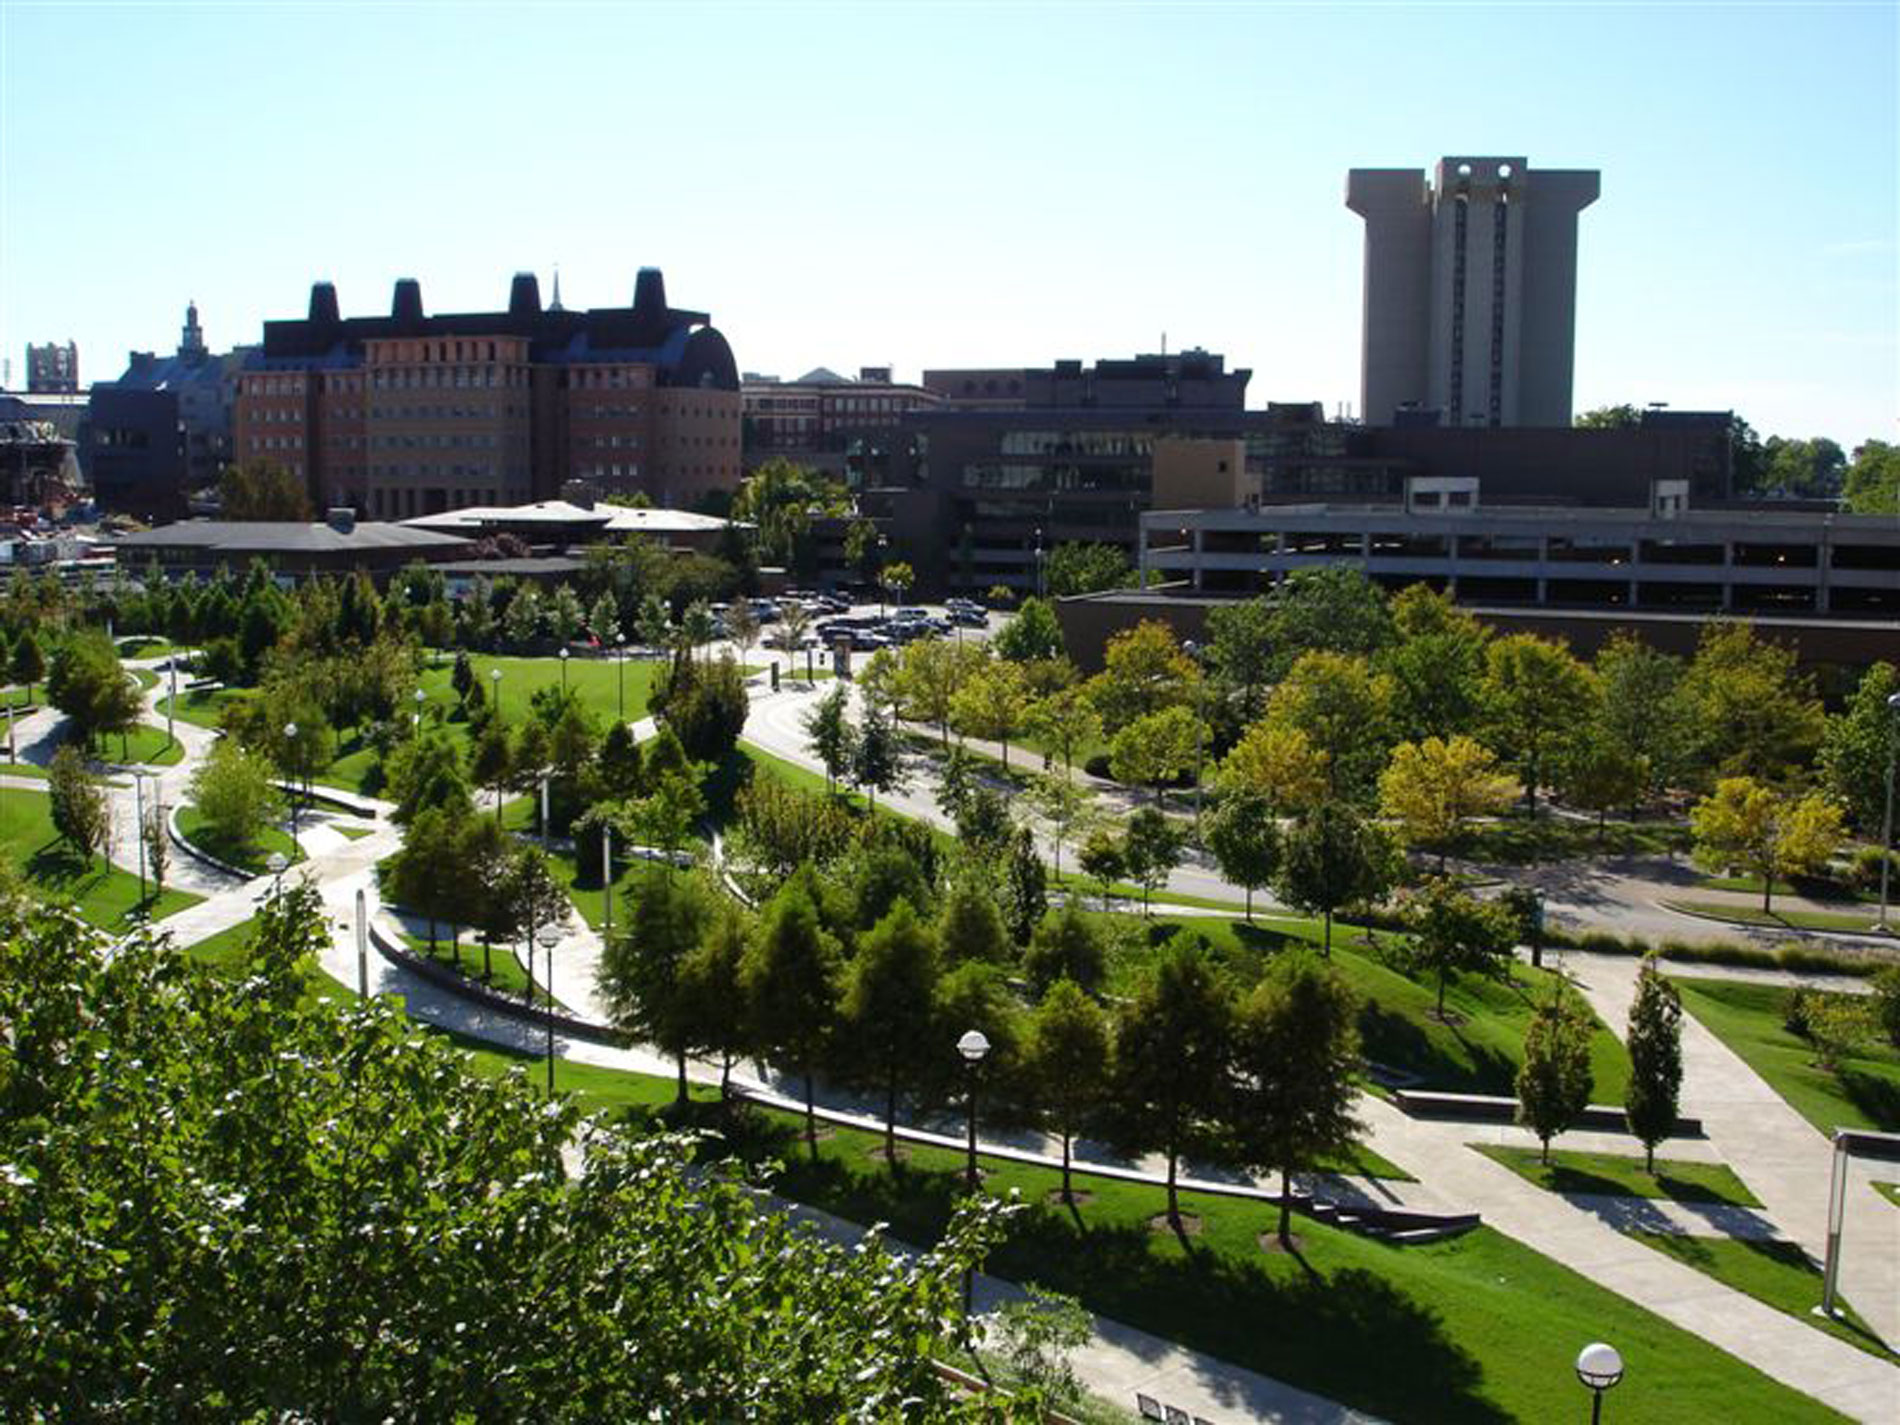 Campus Green, University of Cincinnati, Cincinnati, Ohio